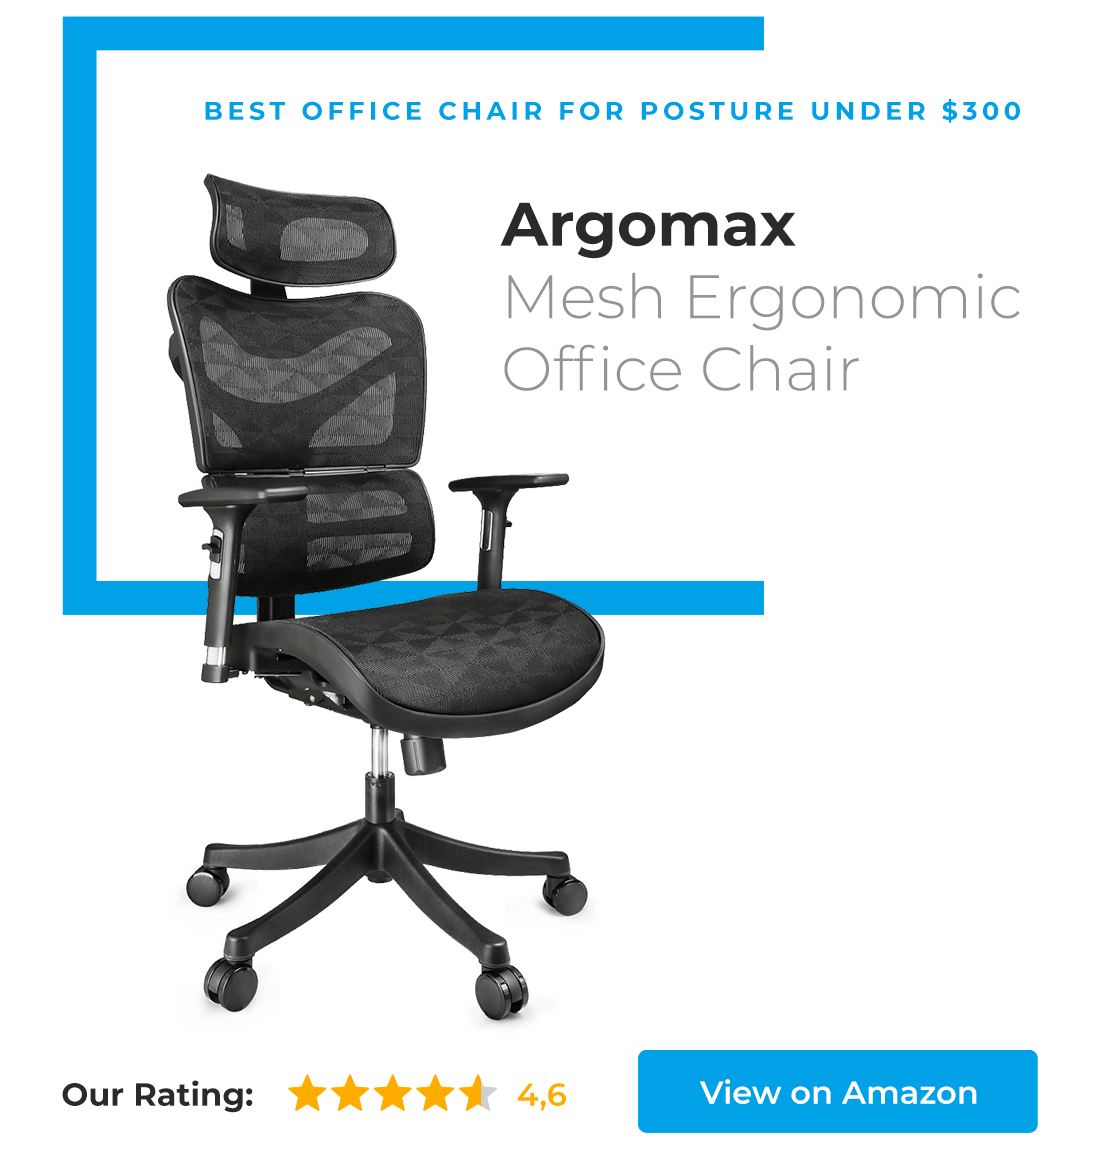 Groovy 14 New Best Office Chairs In 2019 Under 100 200 Pdpeps Interior Chair Design Pdpepsorg